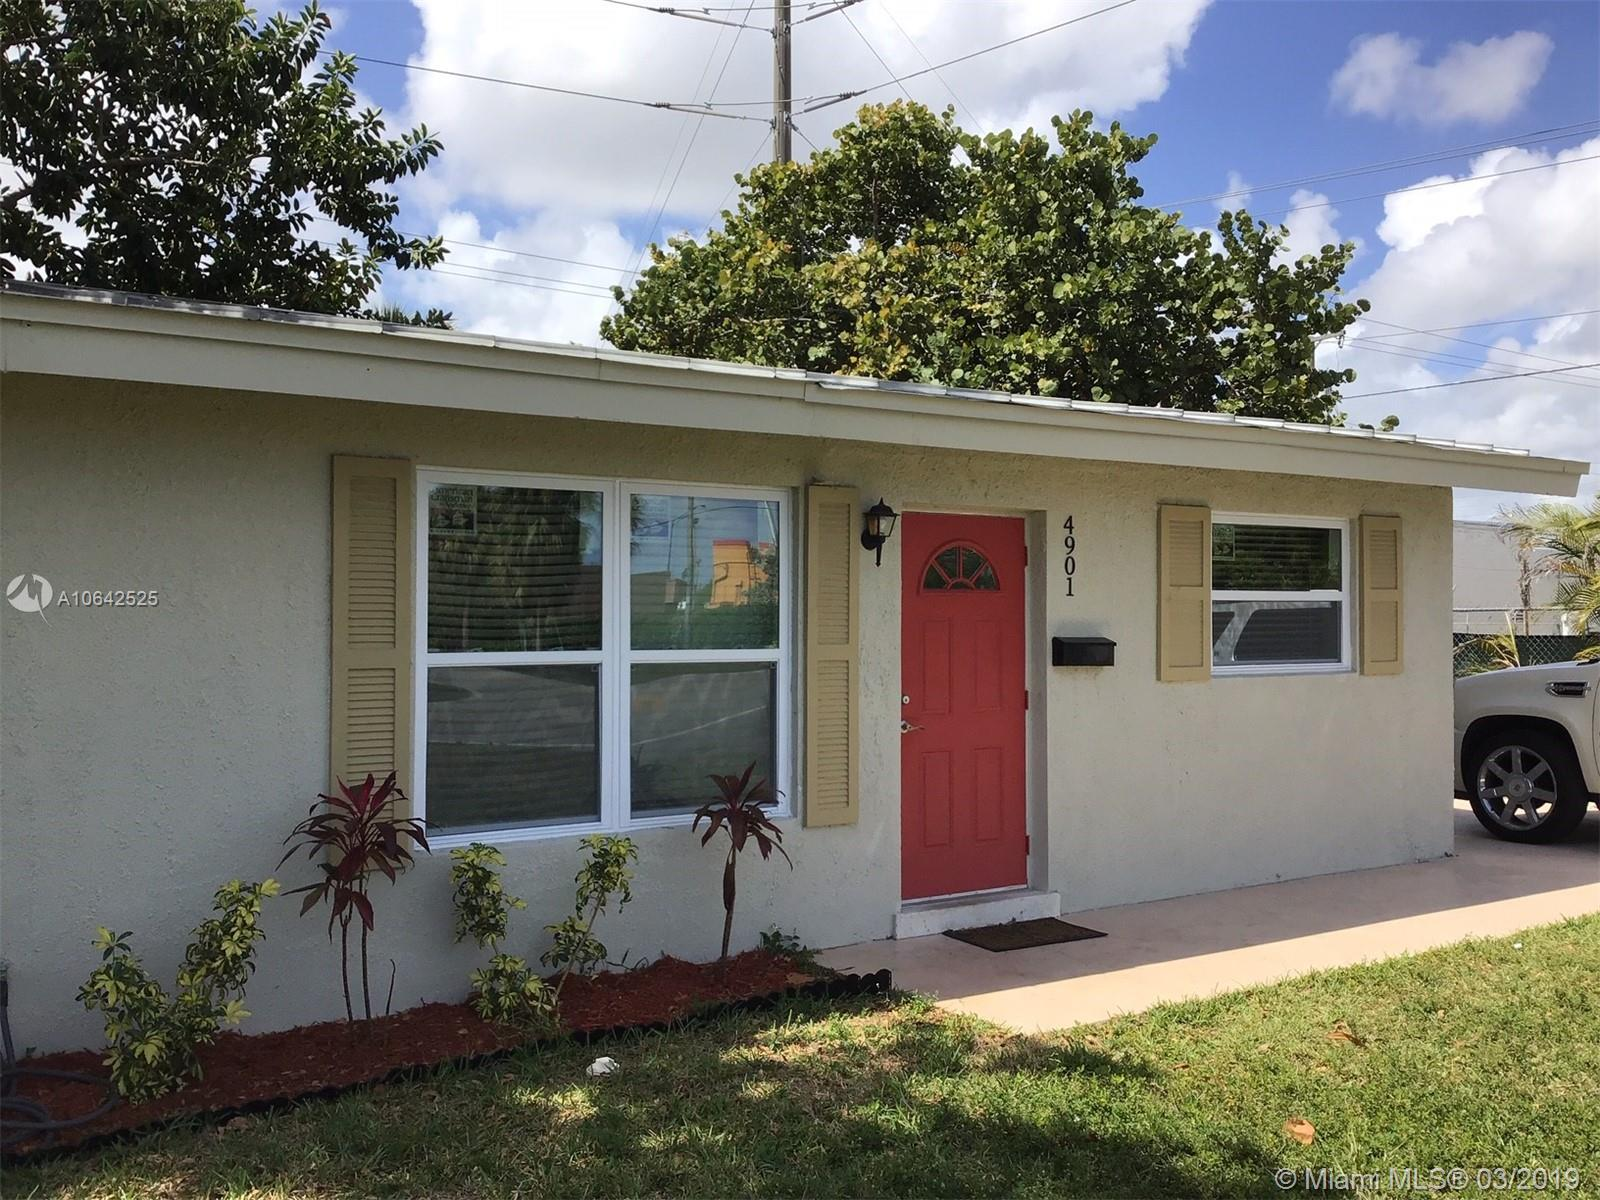 ATTENTION INVESTORS AND NEW HOMEOWNERS: Great 3/2 newly remodeled house in an amazing neighborhood in Oakland Park. New flooring, newer A/C, complete NEW impact windows. All improvements done with permits. Easy access to highway, 10 min drive to the beach. Big fenced backyard with room for a pool. Driveway for up to 3 cars. House is currently being used as a vacation rental with full booking for the past six months with great reviews. One of the lowest priced house in the area.